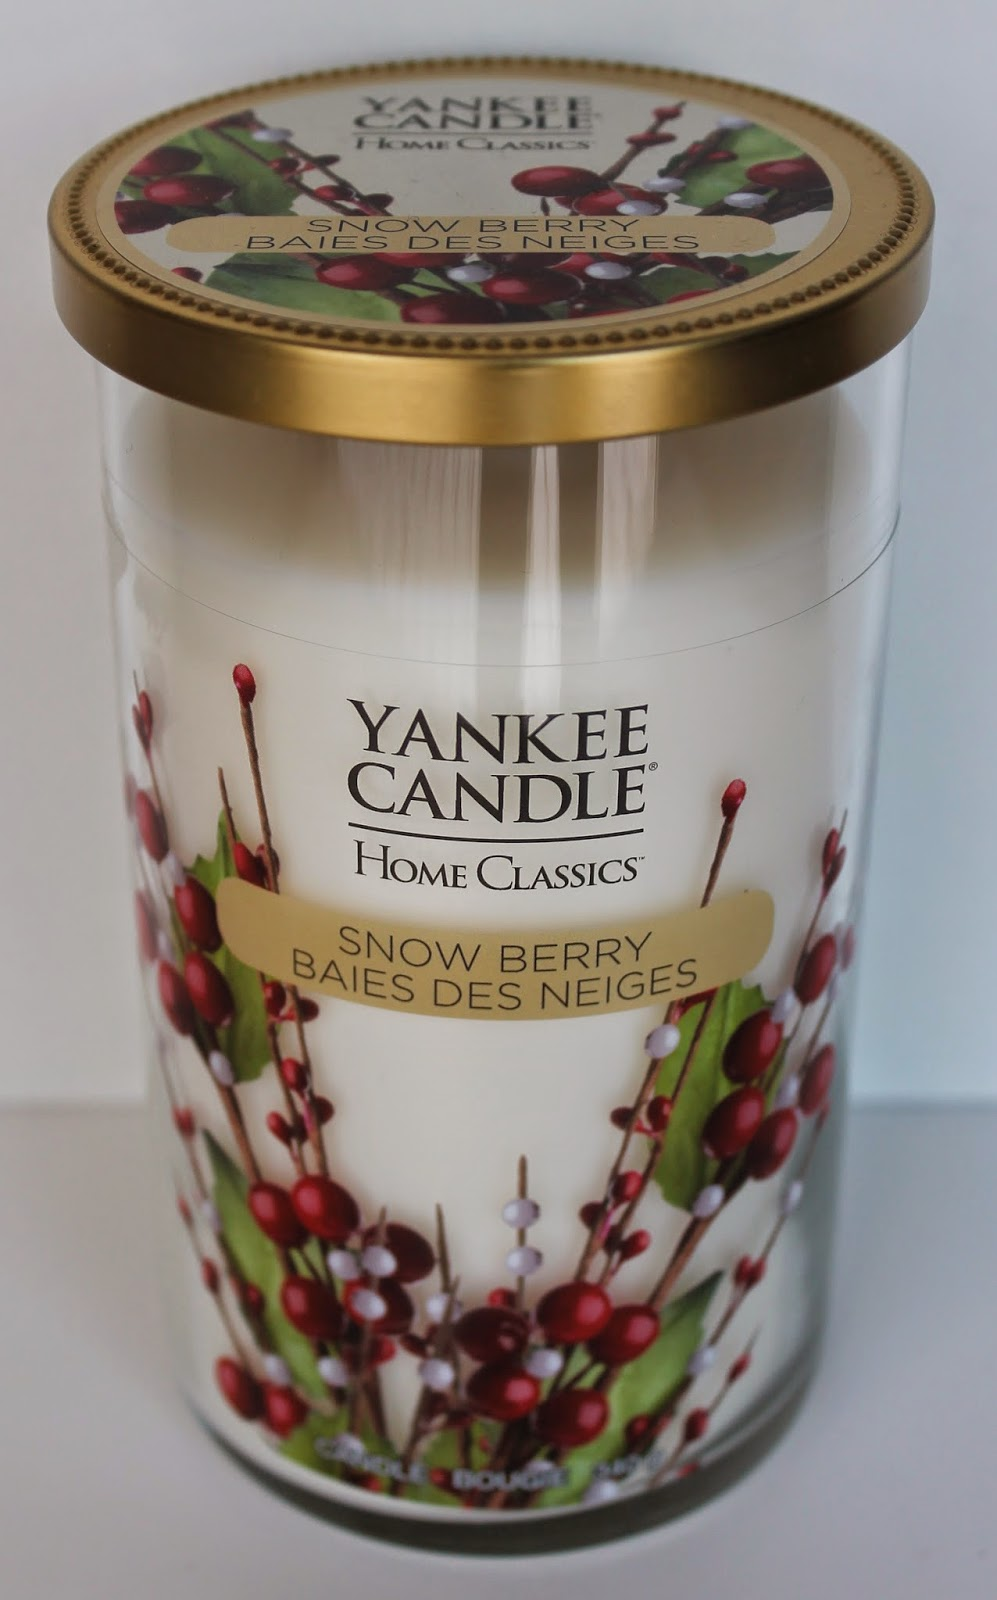 Yankee Candle Snow Berry